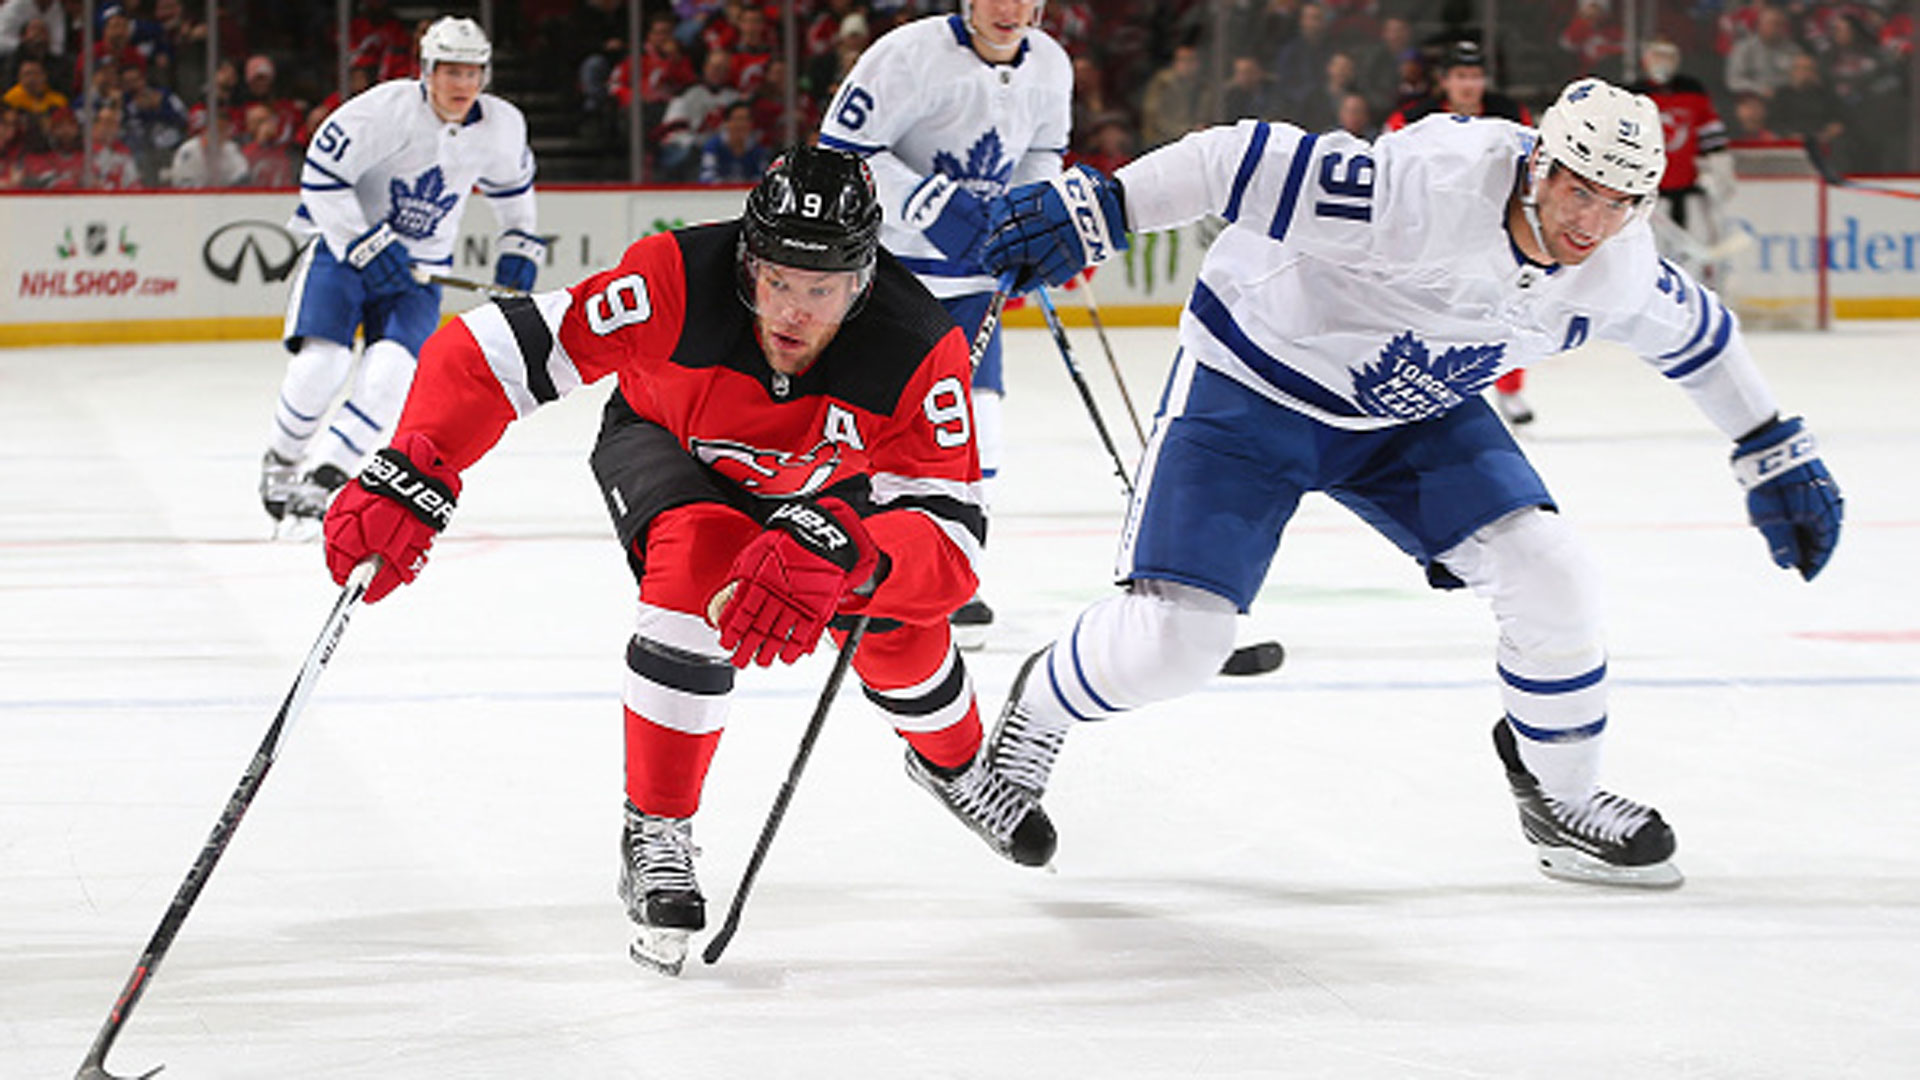 ac87bb6e Convincing Taylor Hall to stay is no easy task for New Jersey Devils -  TSN.ca